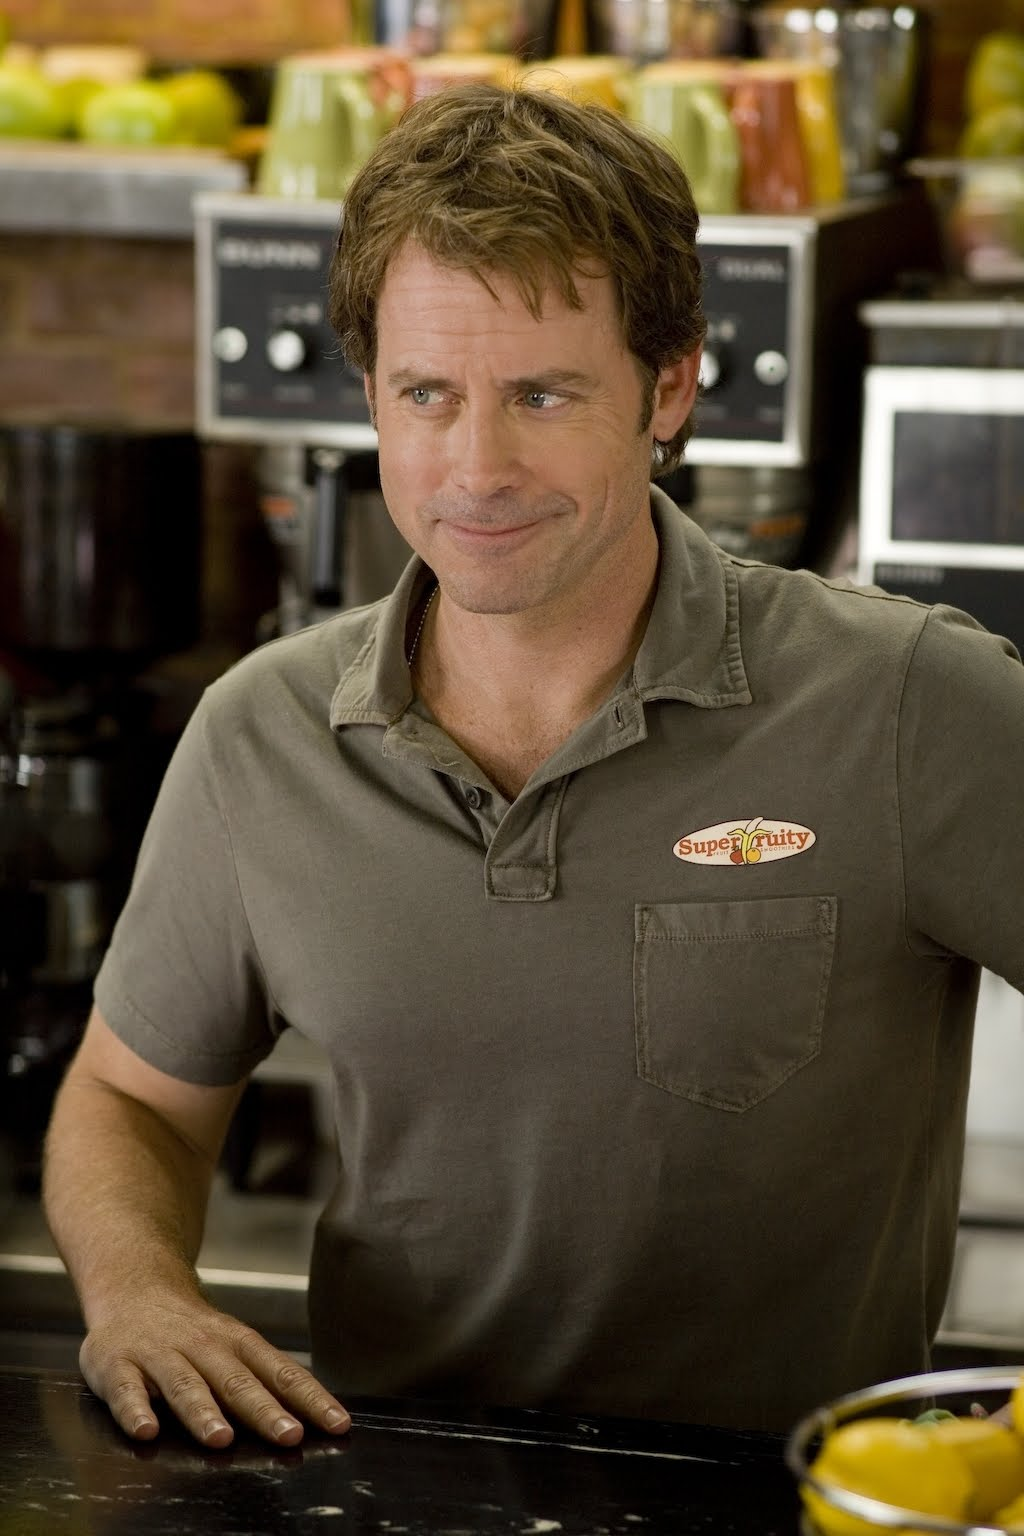 Wallpaper Db Greg Kinnear Background